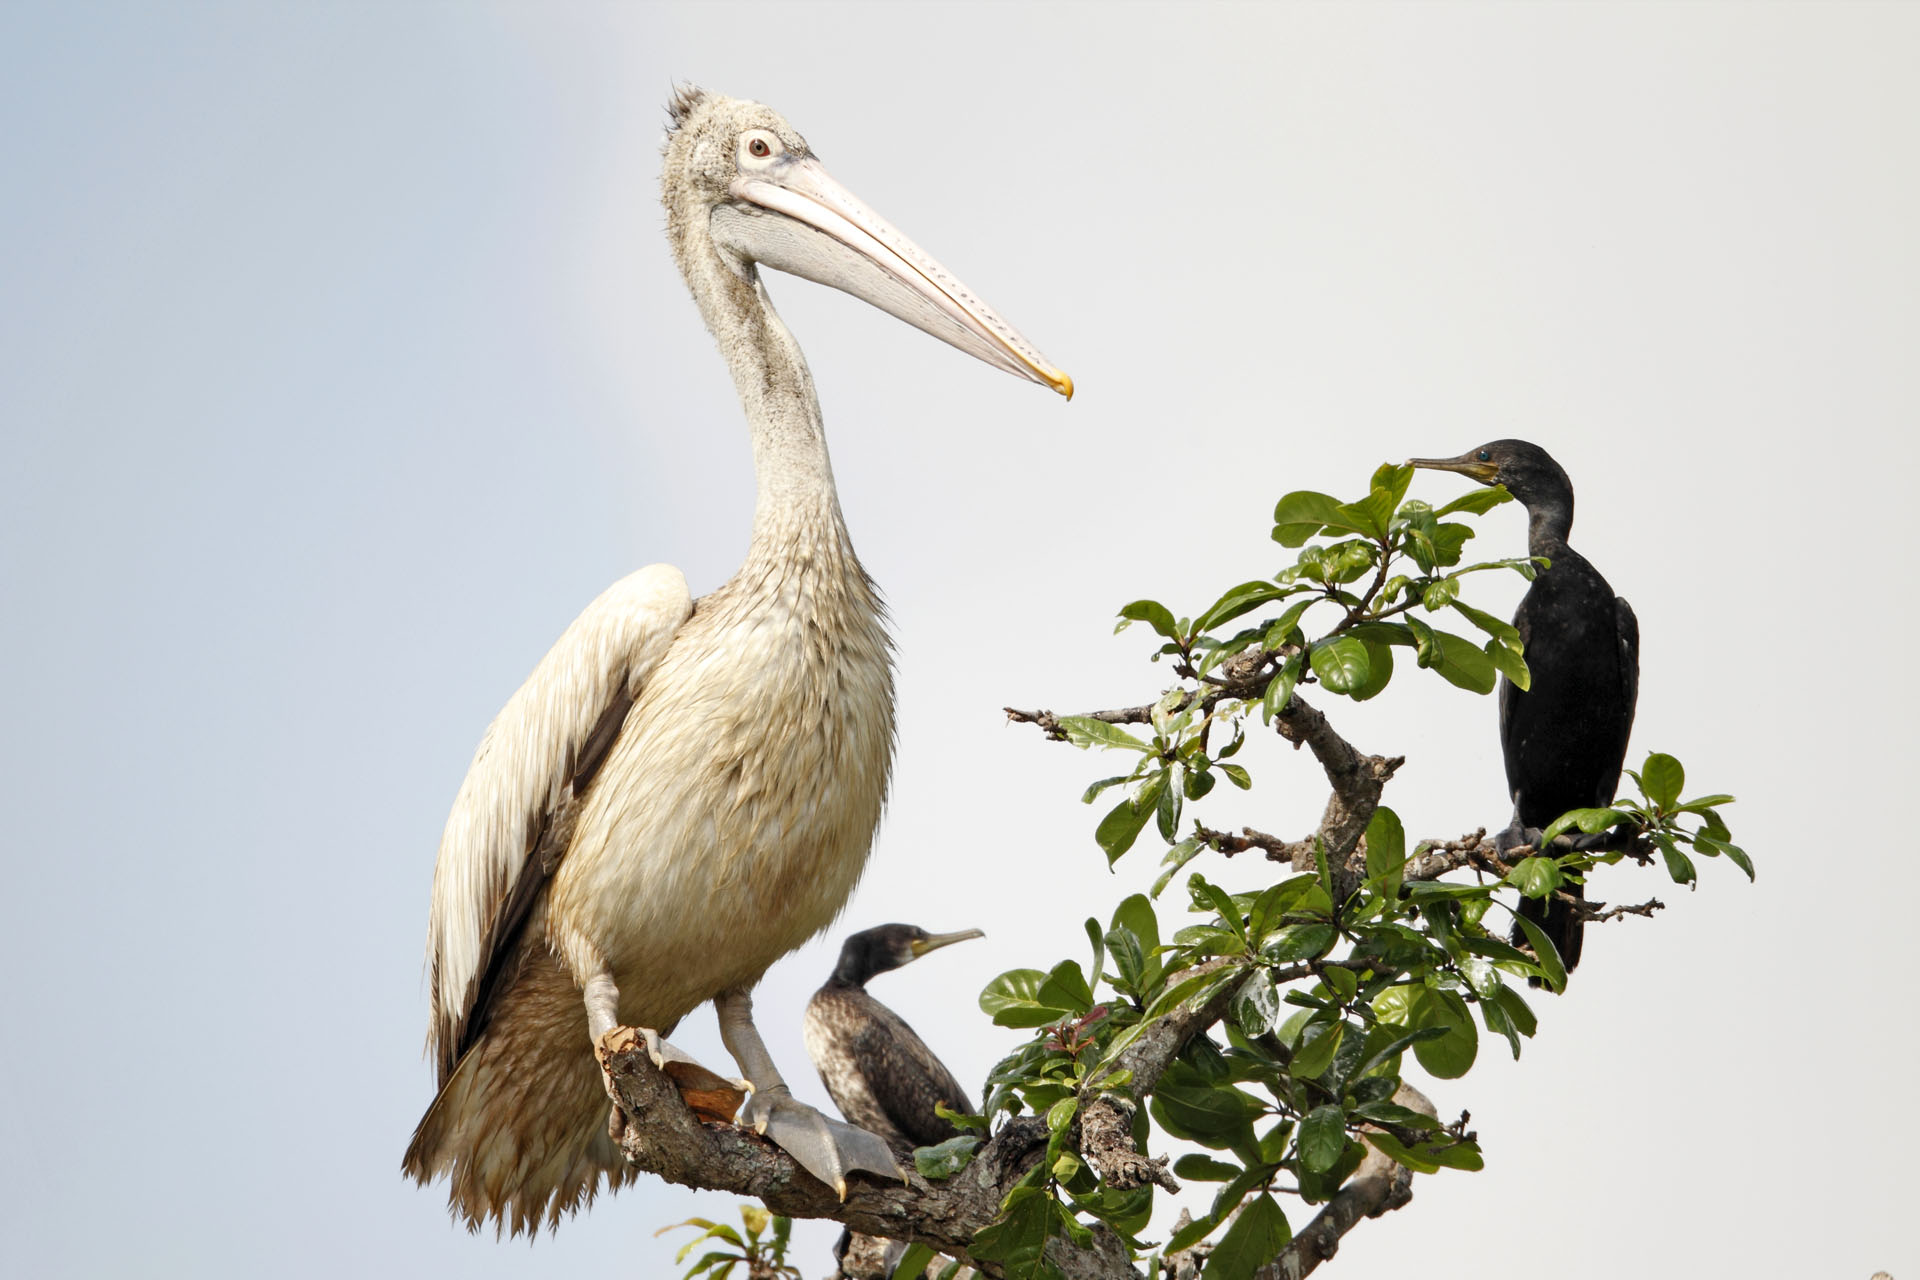 Spot-billed Pelican with Cormorant at Prek Toal